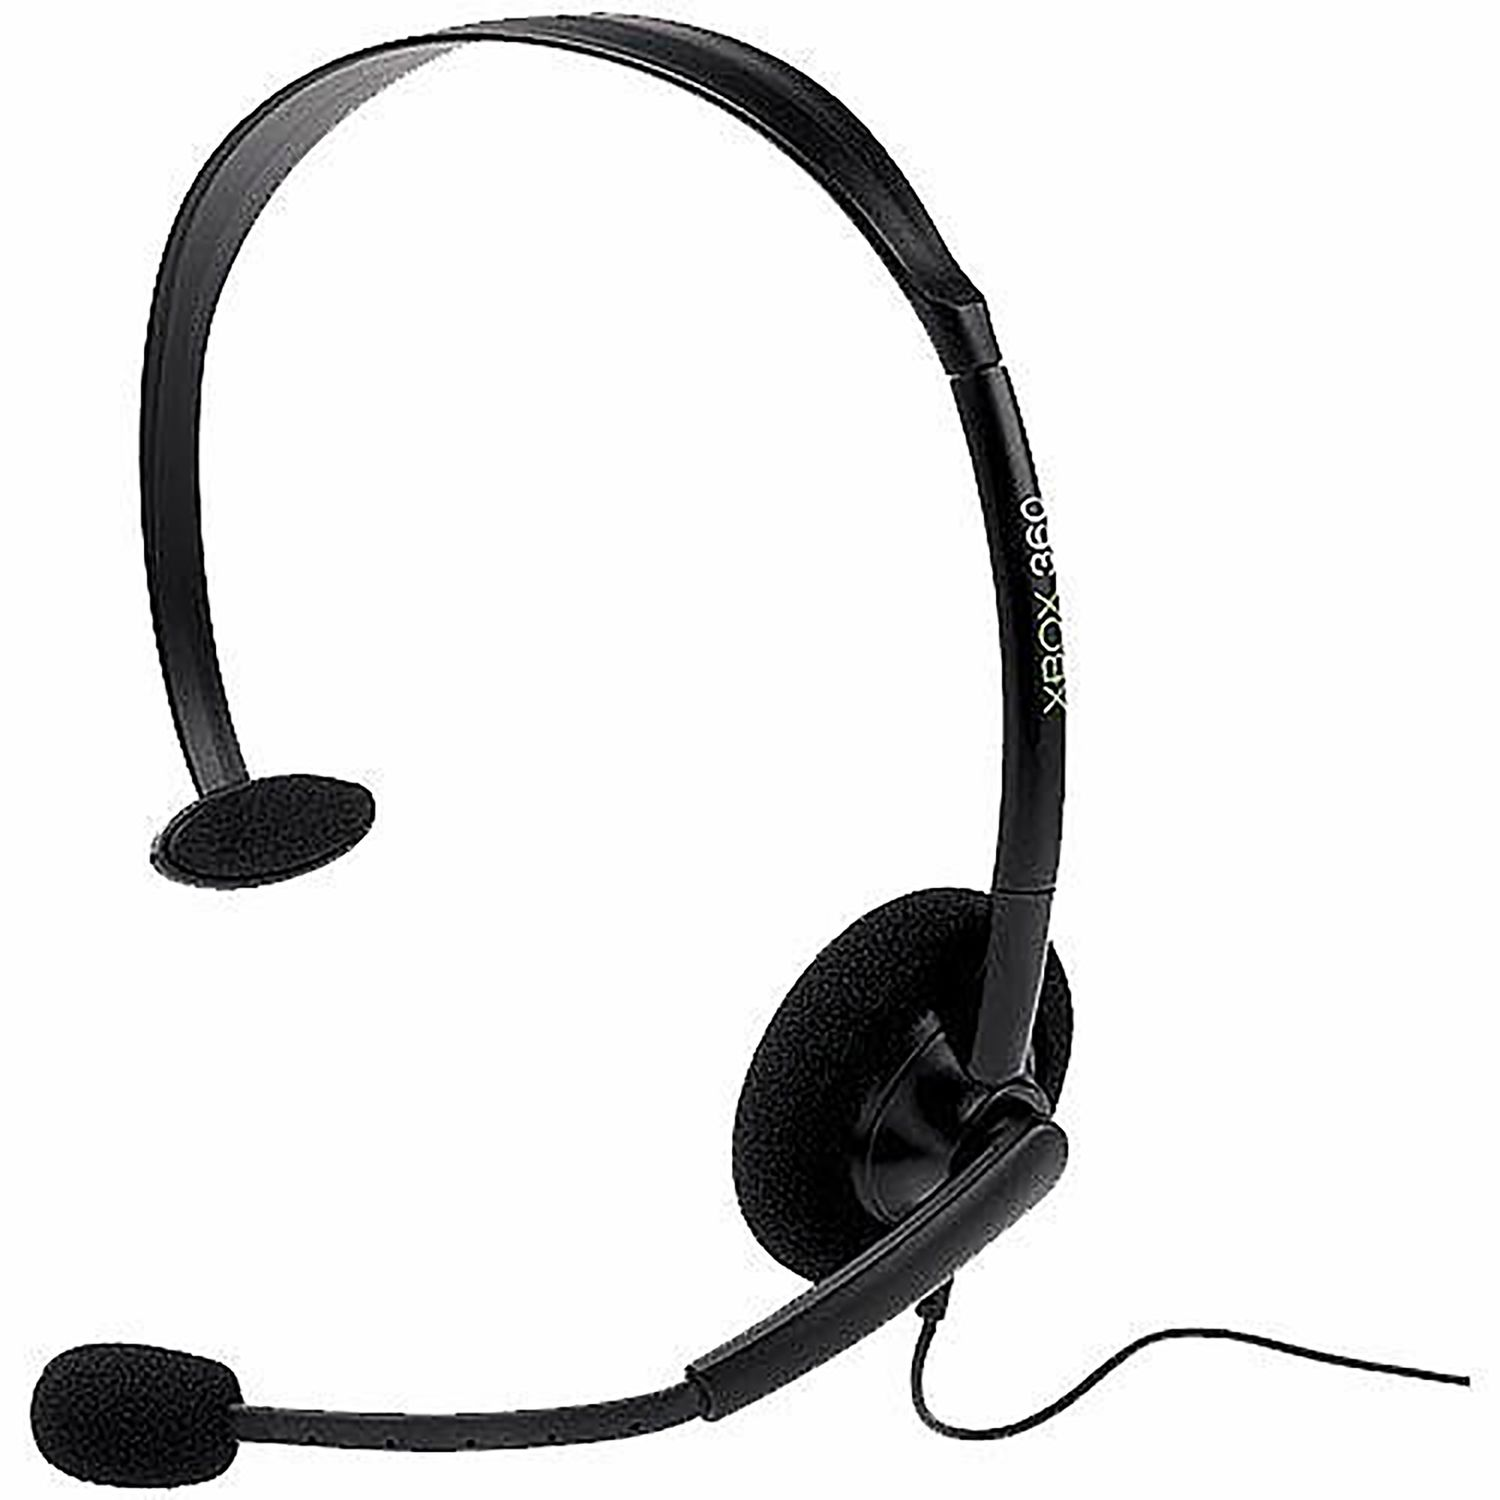 Microsoft Wired Headset With Boom Mic For Xbox 360, Black